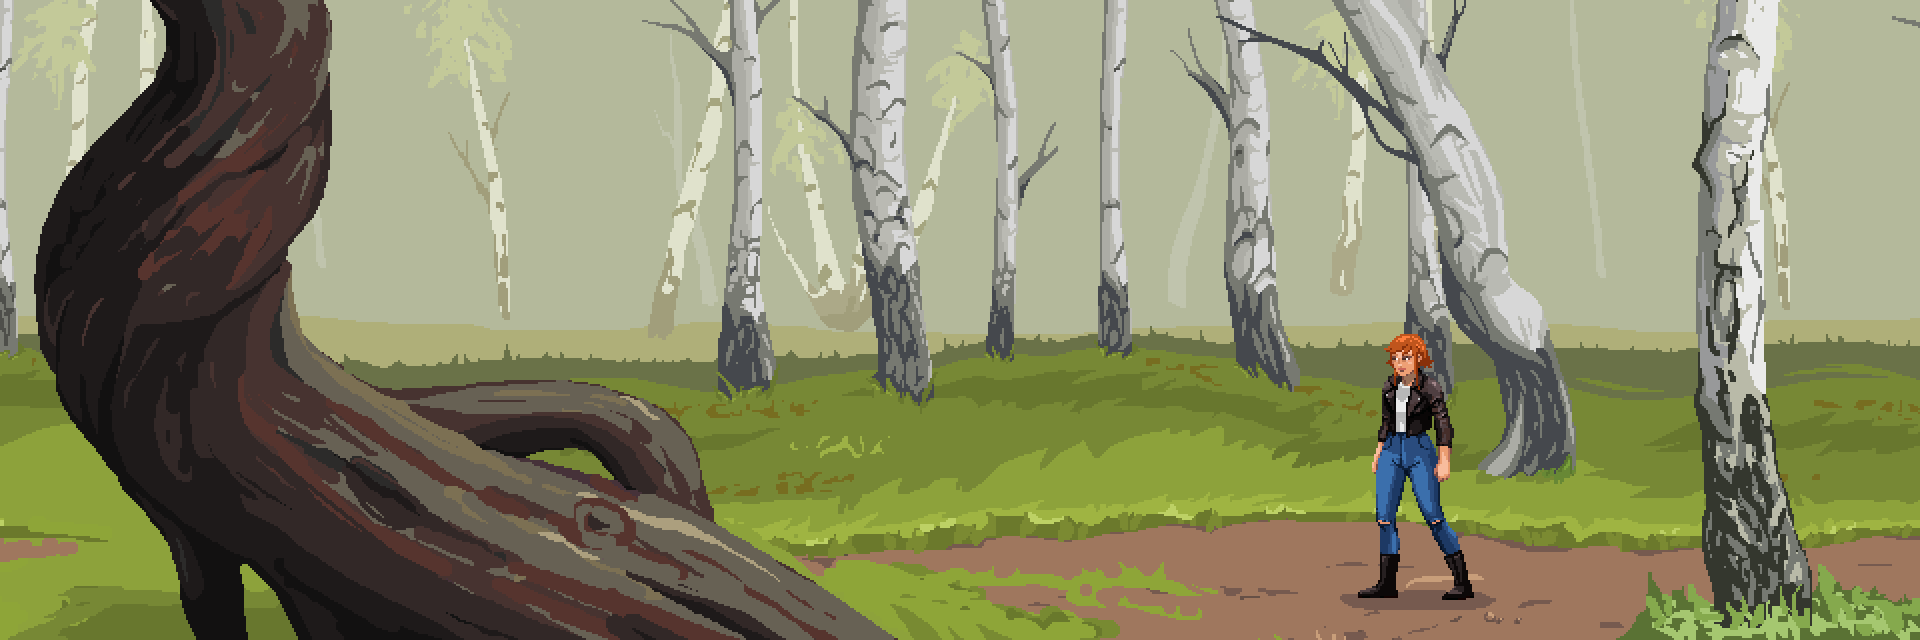 background2x | ✏️ 2D Художник - Аниматор / 2D Artist / Animation / Pixel art ✏️